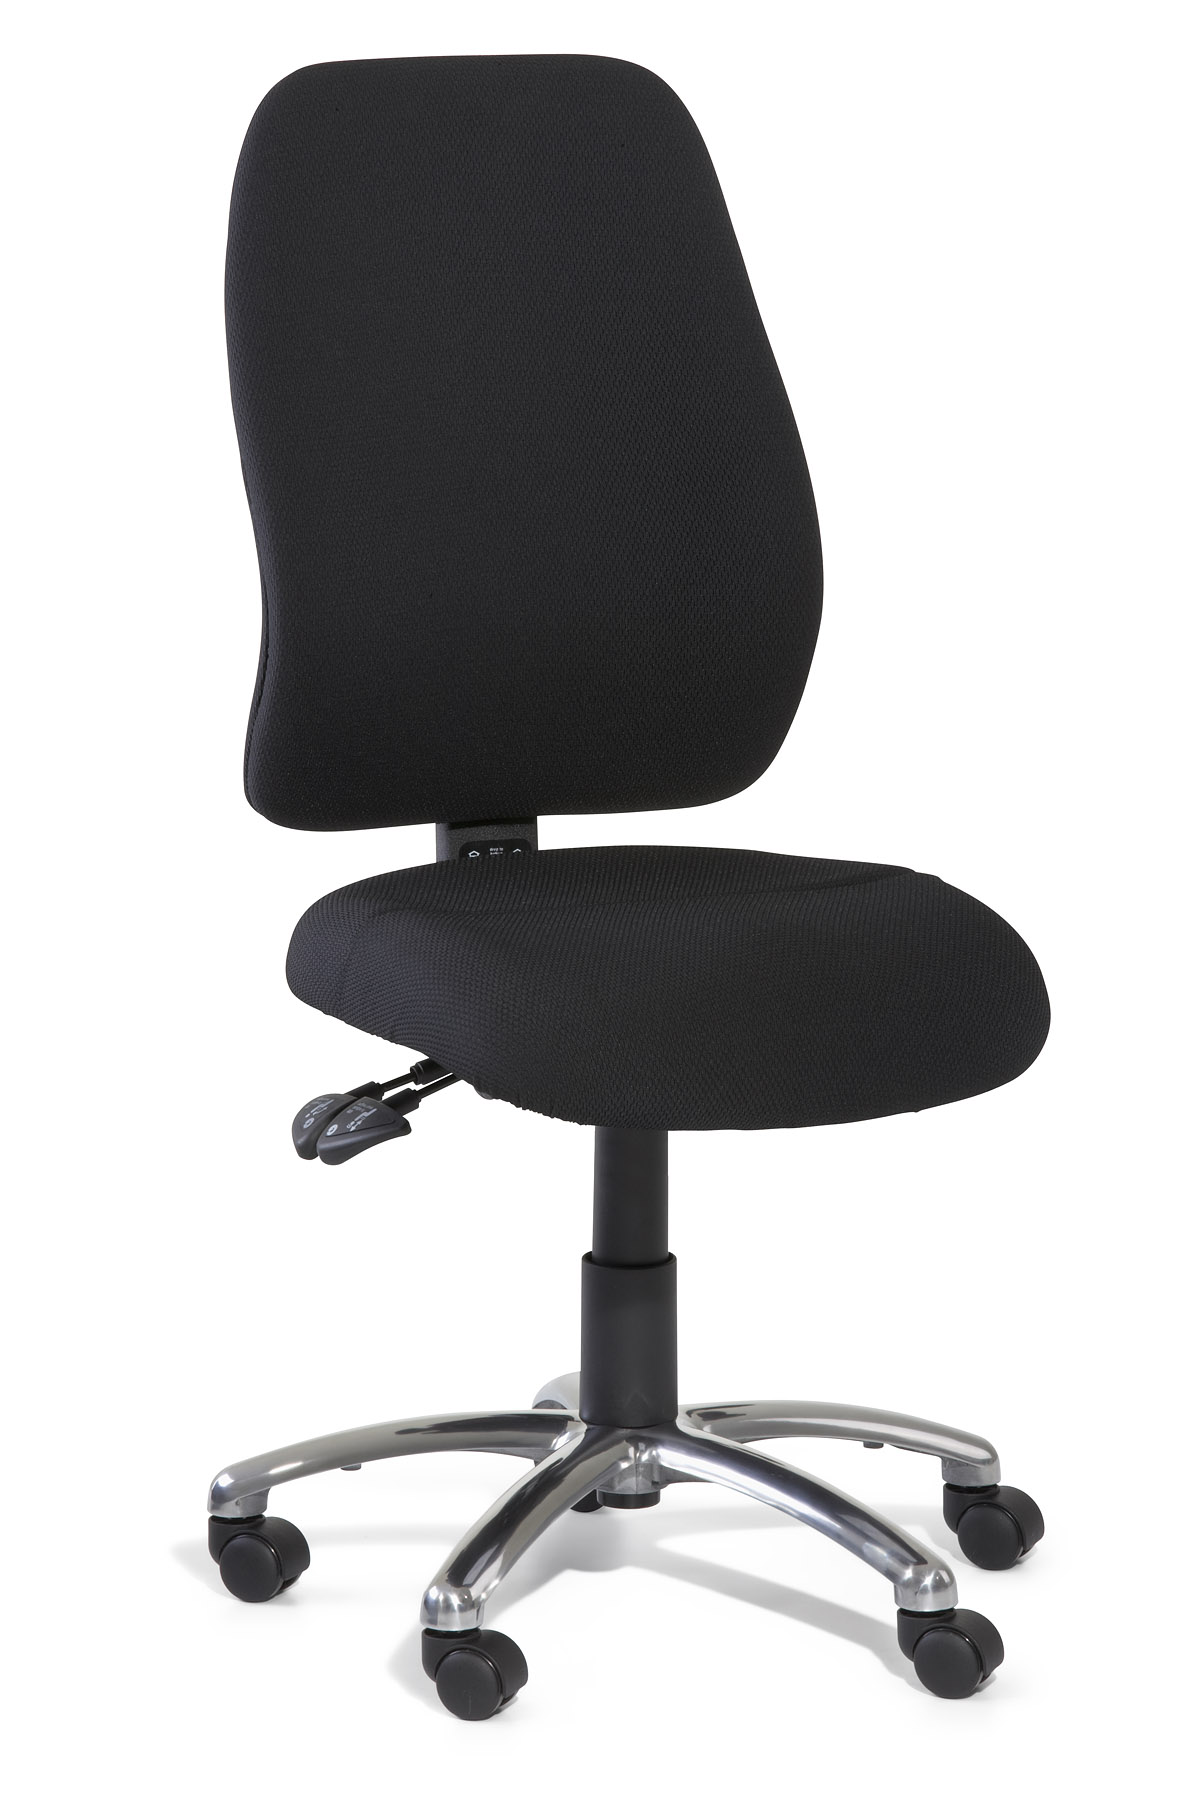 Gregory Ergonomic Office Chair Range From For Sale Aus